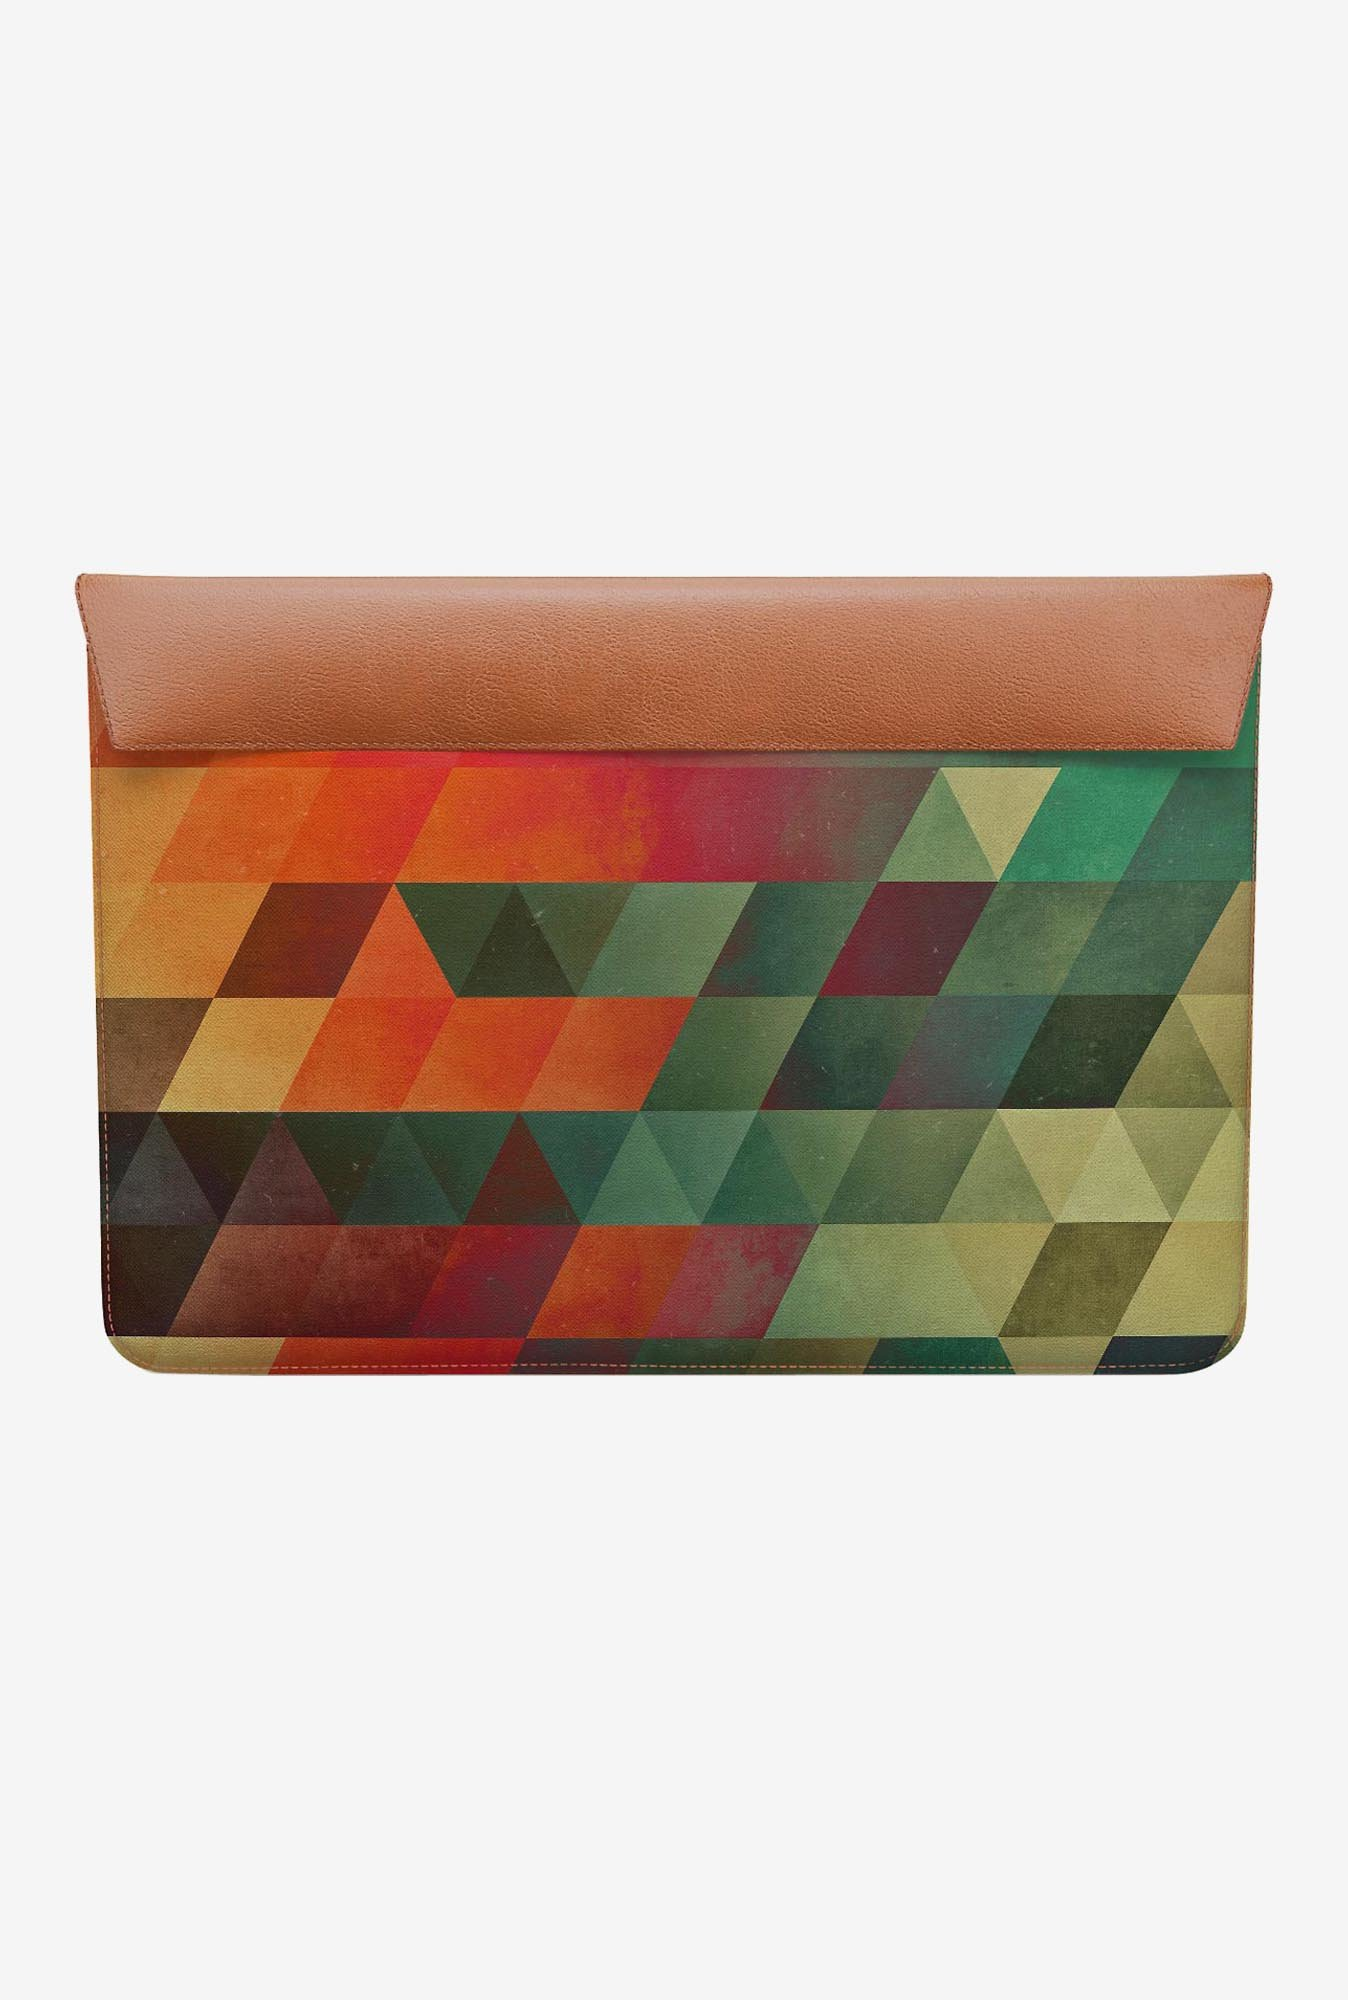 DailyObjects Yrrynngg Zkyy MacBook Pro 13 Envelope Sleeve